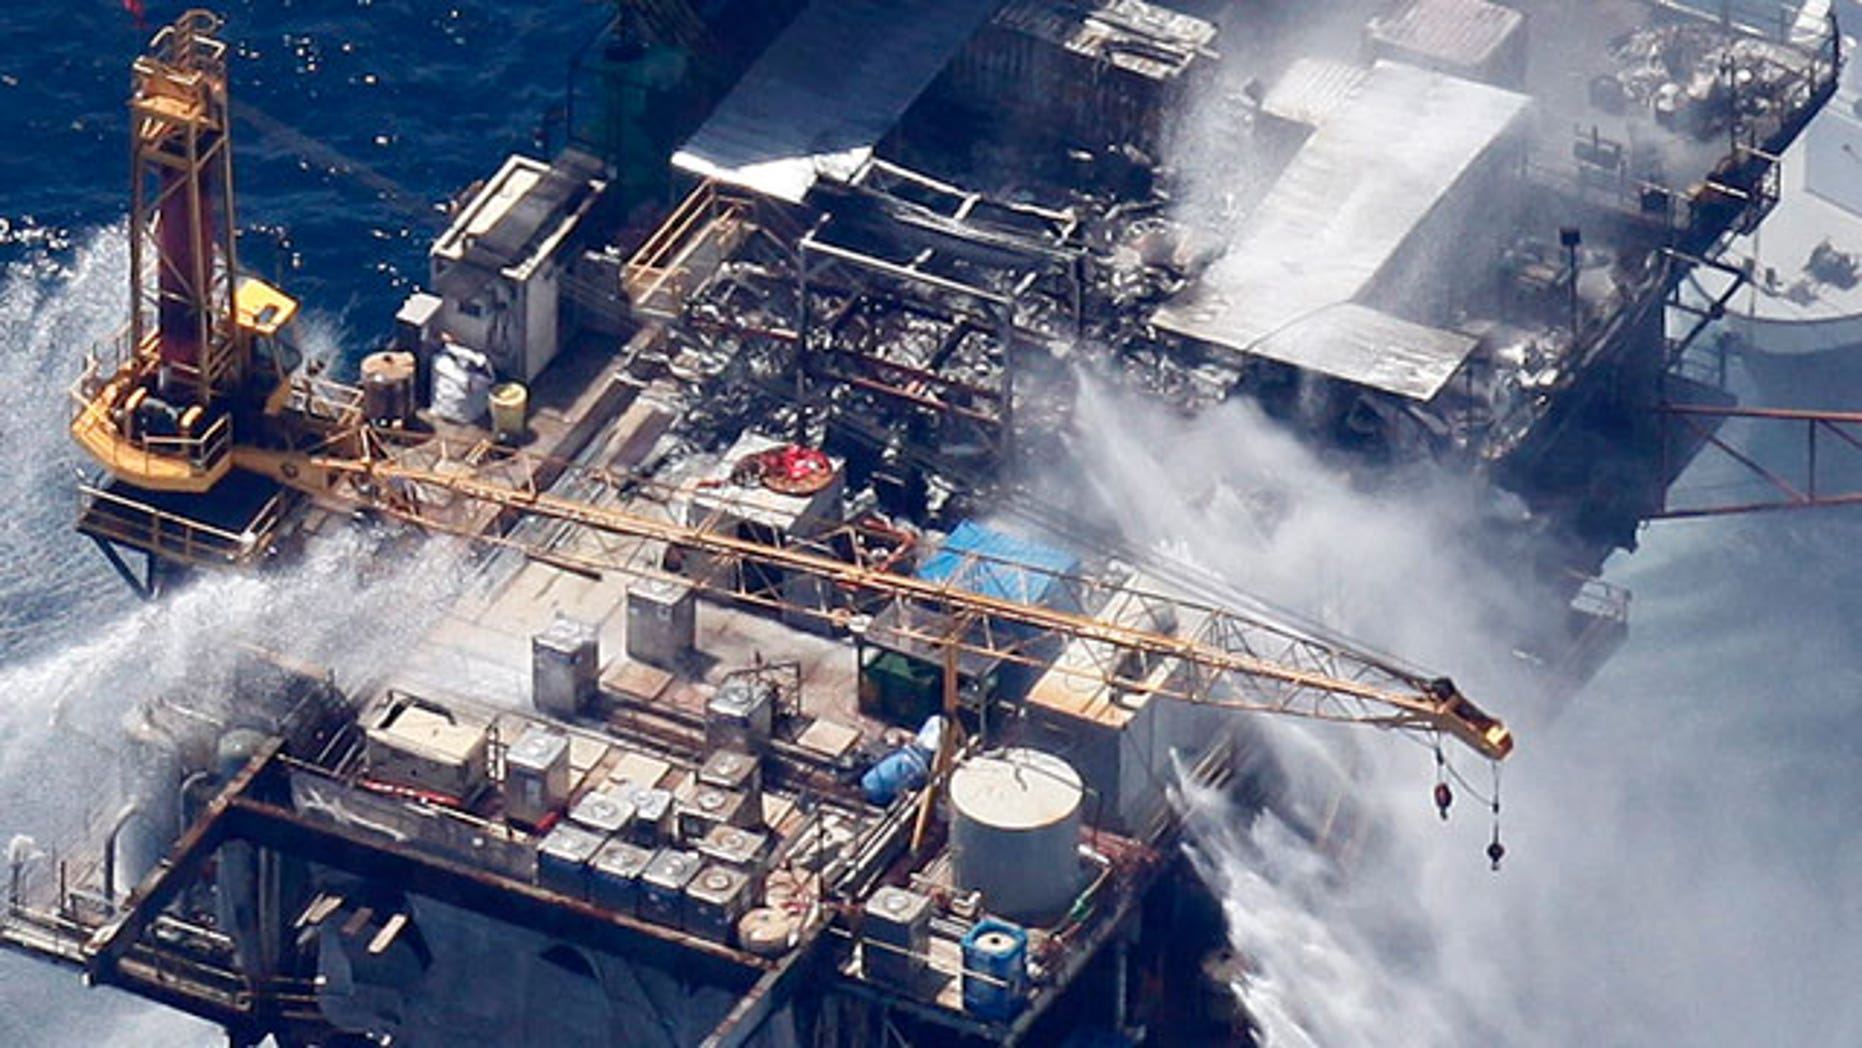 Boats are seen spraying water on an oil and gas platform that exploded in the Gulf of Mexico, off the coast of Louisiana., Thursday, Sept. 2, 2010. All 13 crew members were rescued.